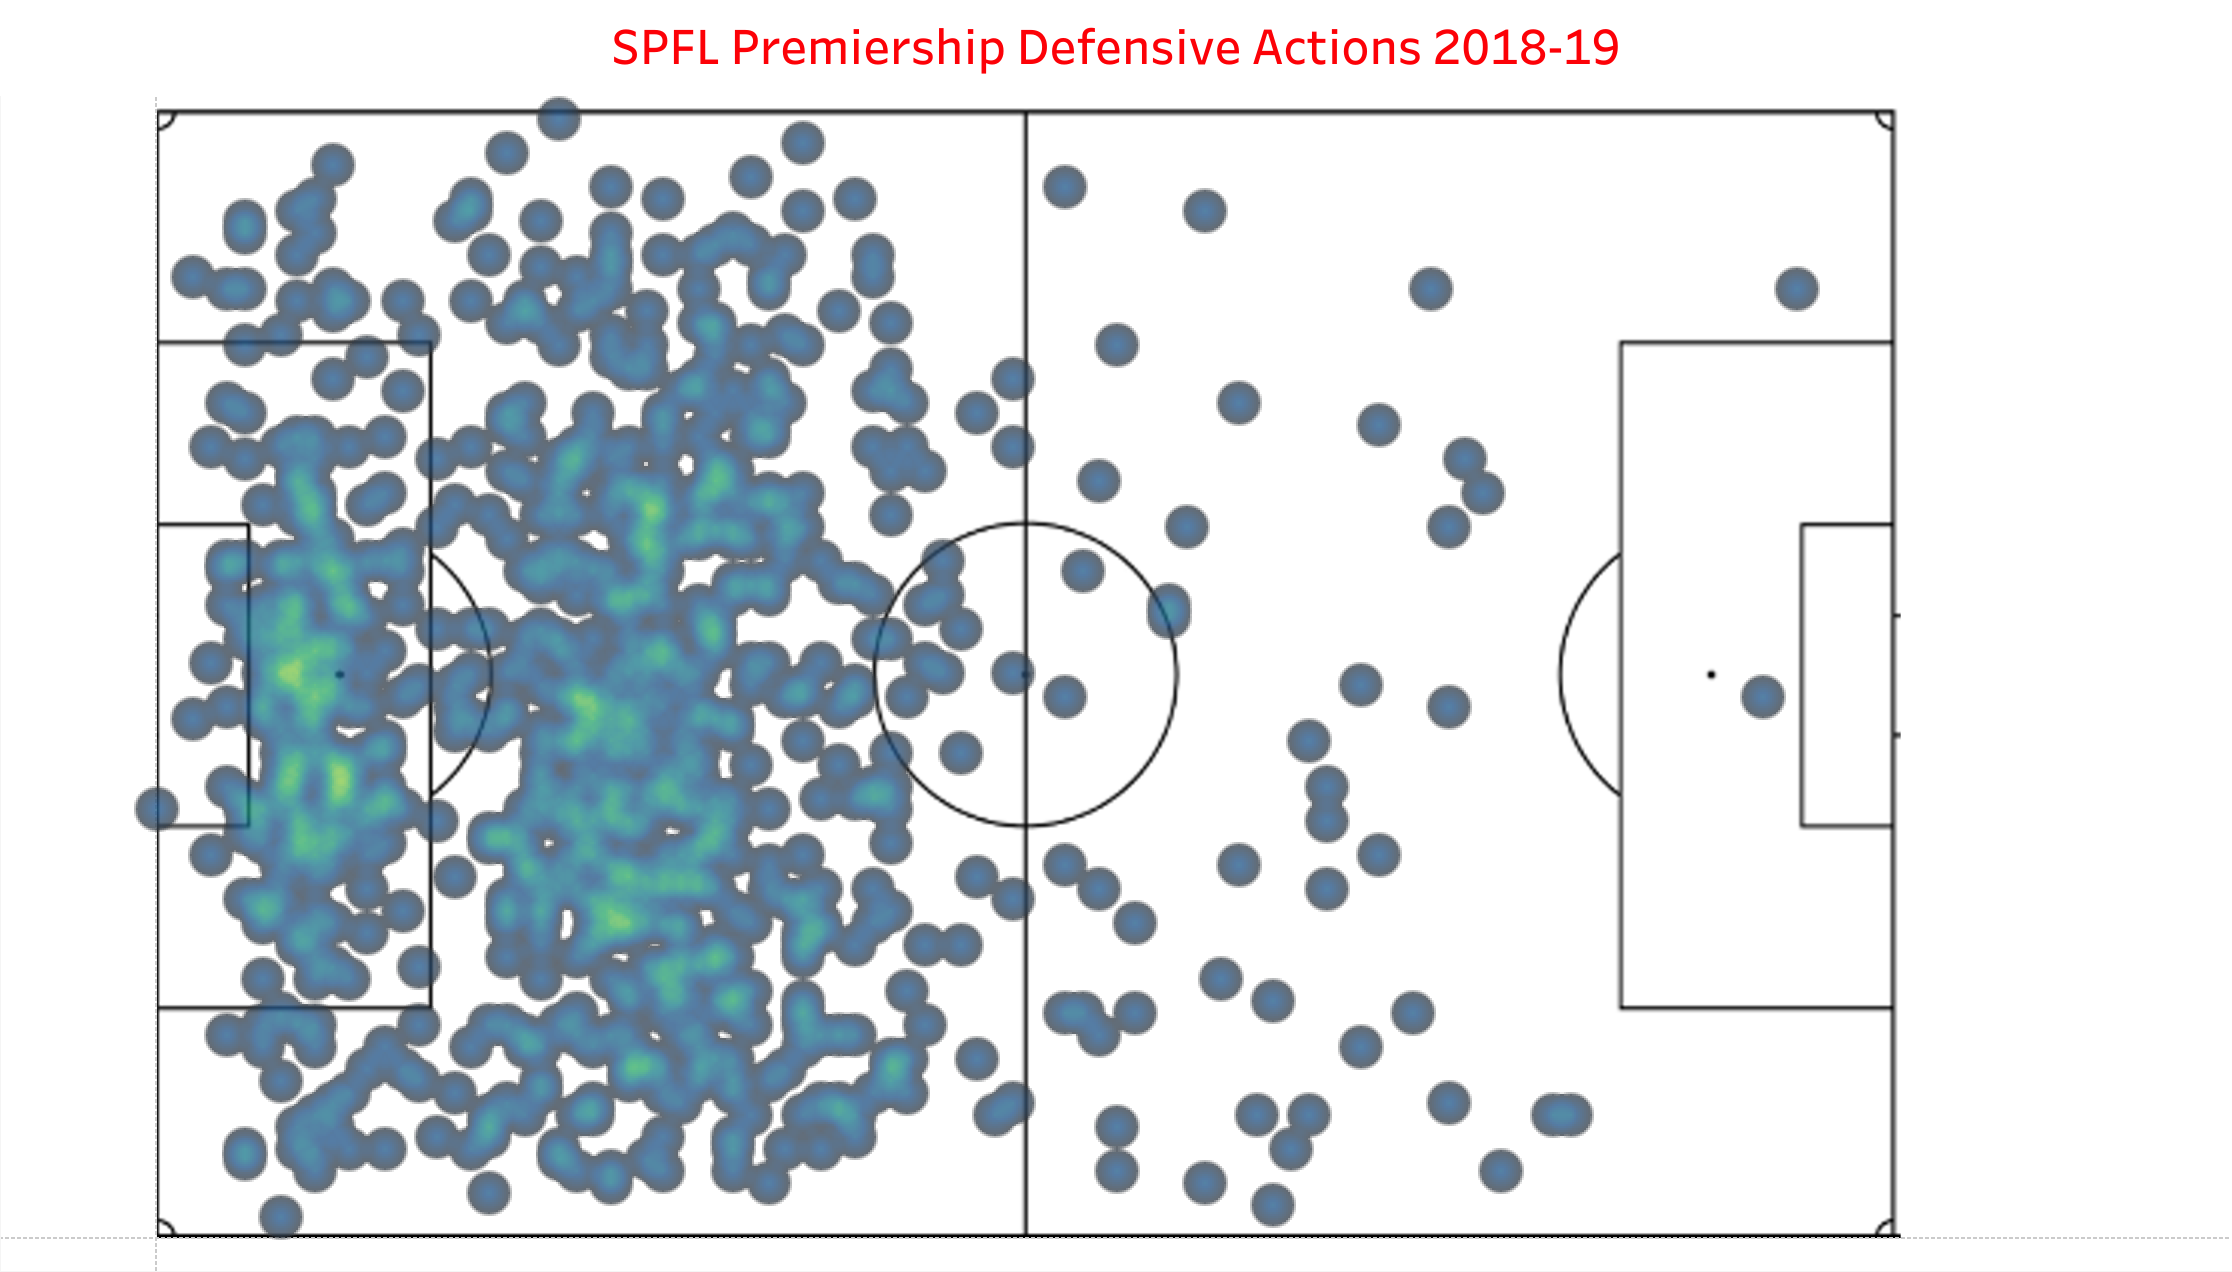 Heatmap of defensive actions for Craig Halkett in 2018-19 in the SPFL Premiership. The lighter the color, the more defensive actions in that area.